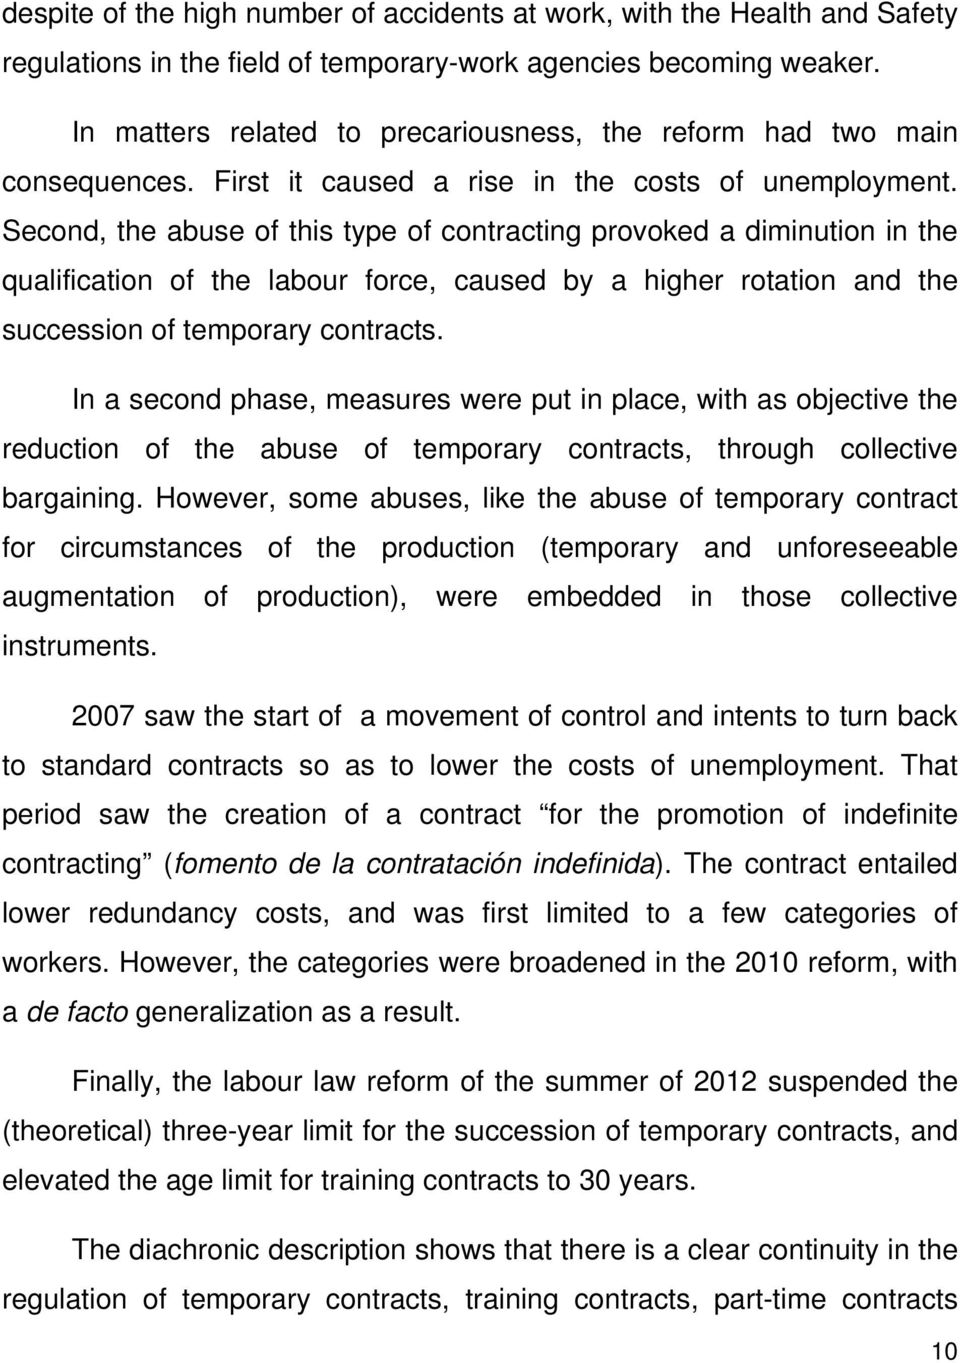 Second, the abuse of this type of contracting provoked a diminution in the qualification of the labour force, caused by a higher rotation and the succession of temporary contracts.